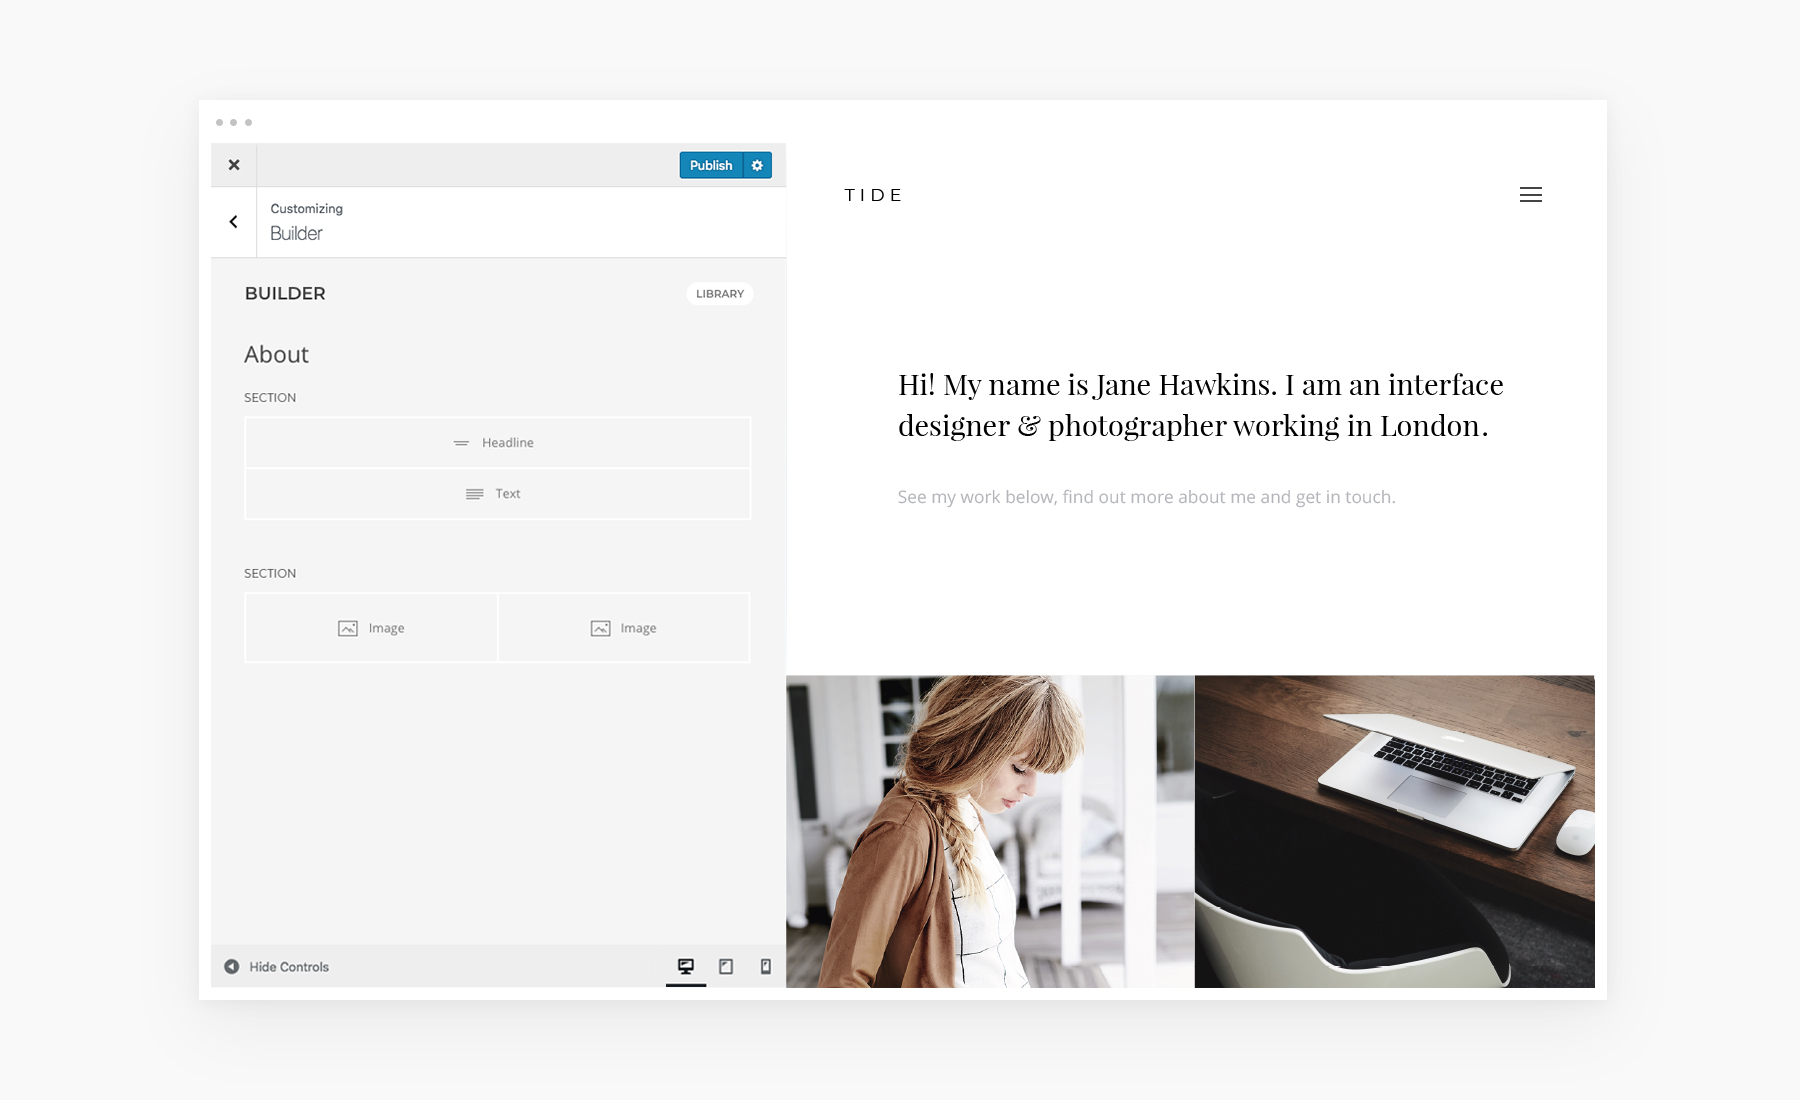 yootheme-pro-page-builder Introducing the YOOtheme Pro Page Builder design tips